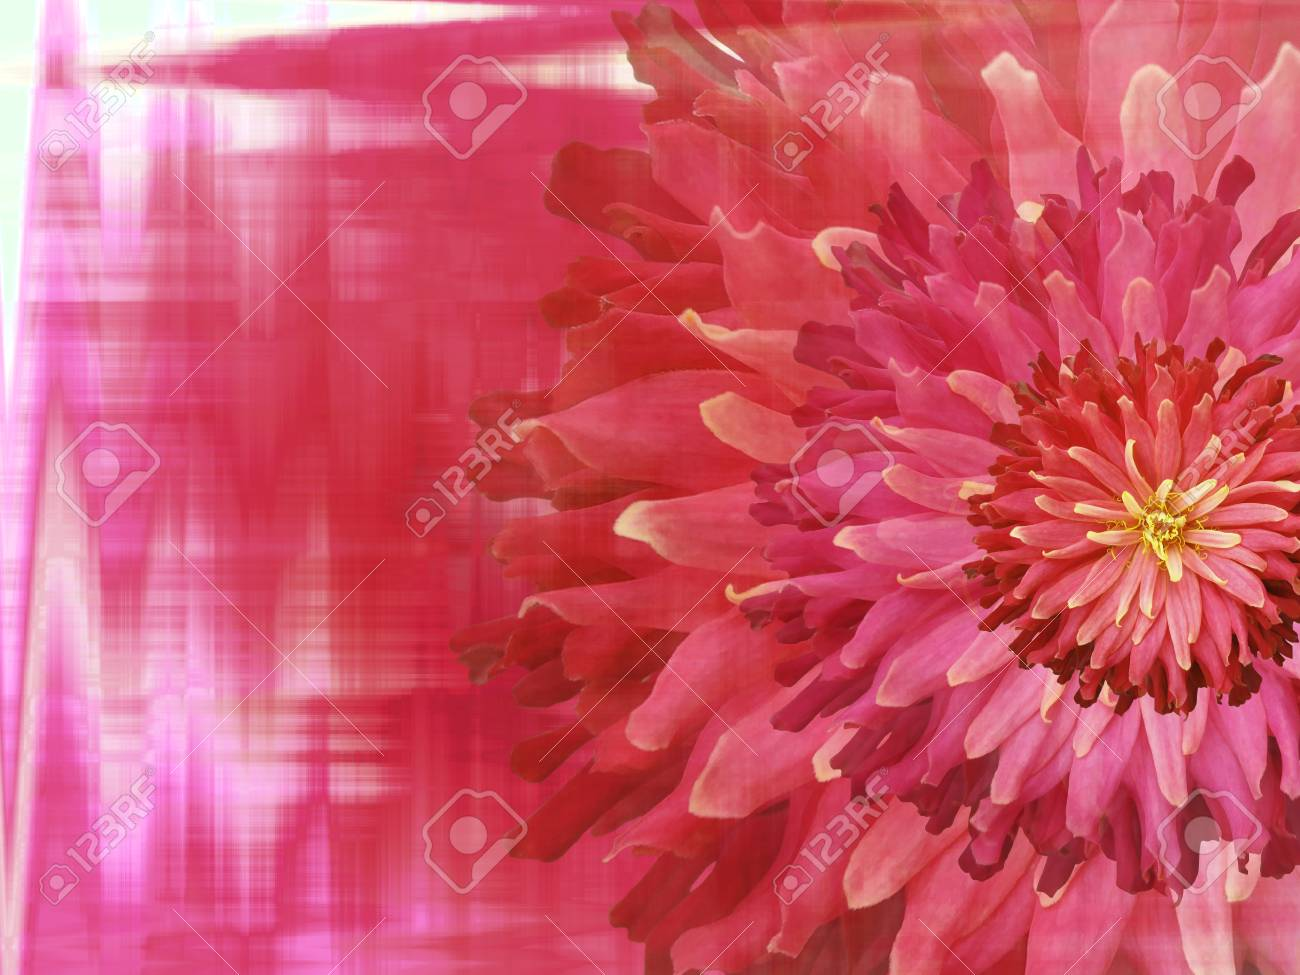 Red Pink Autumn Flowers On Red Pink Blurred Background Stock